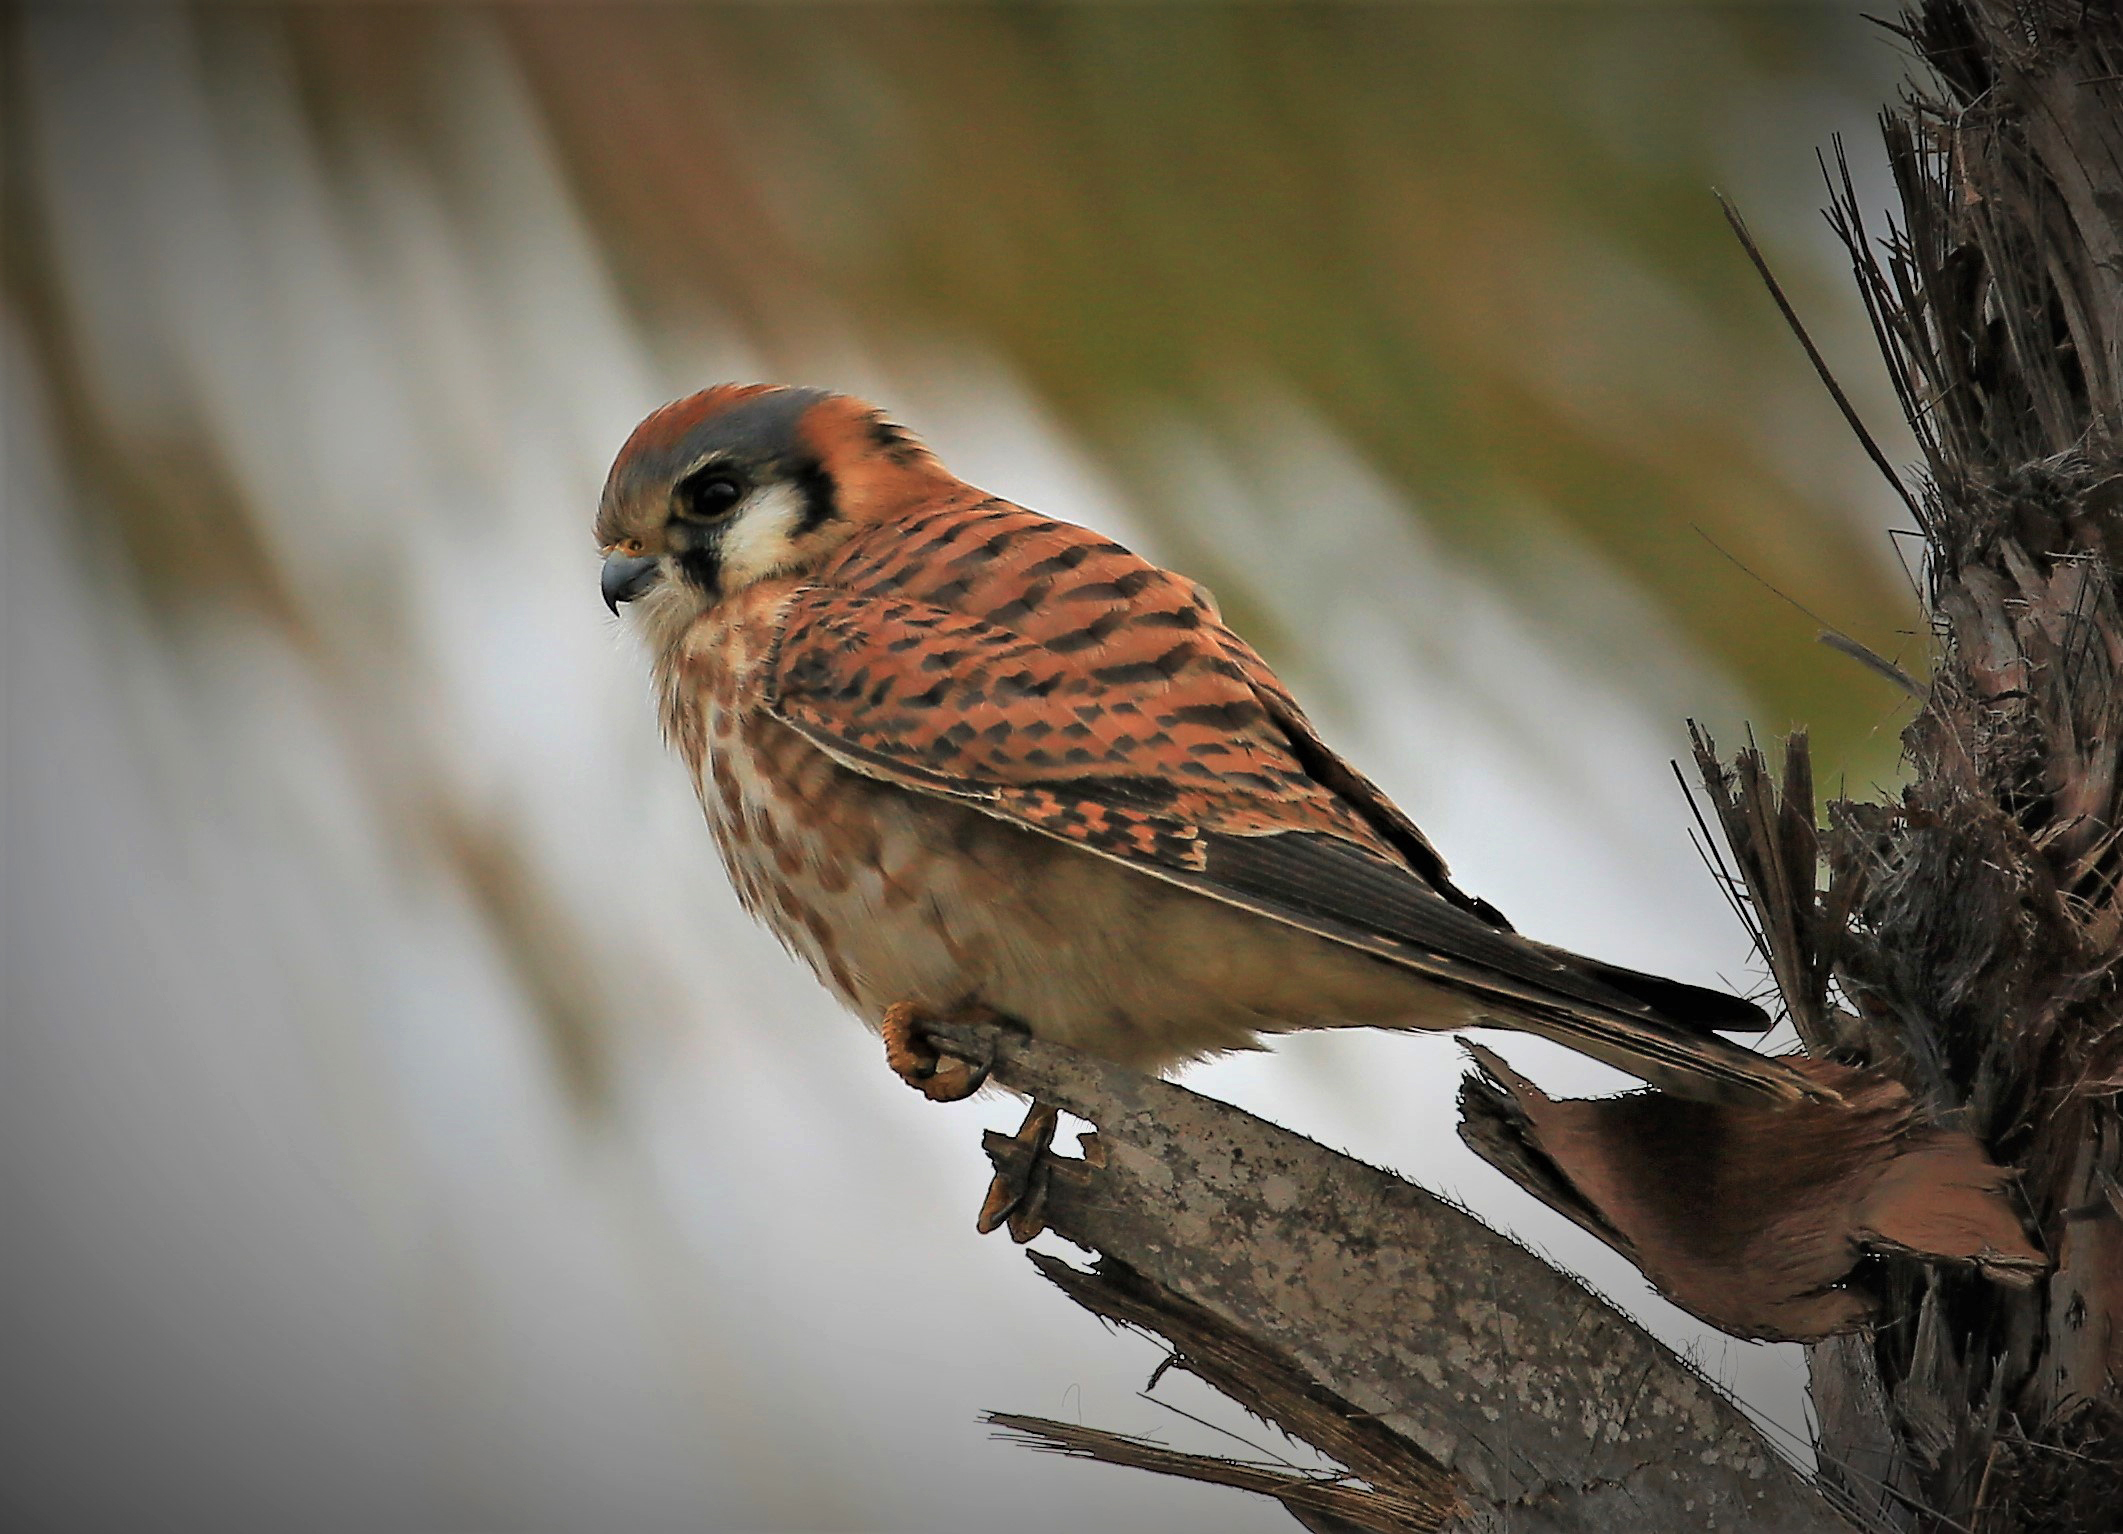 A female American Kestrel